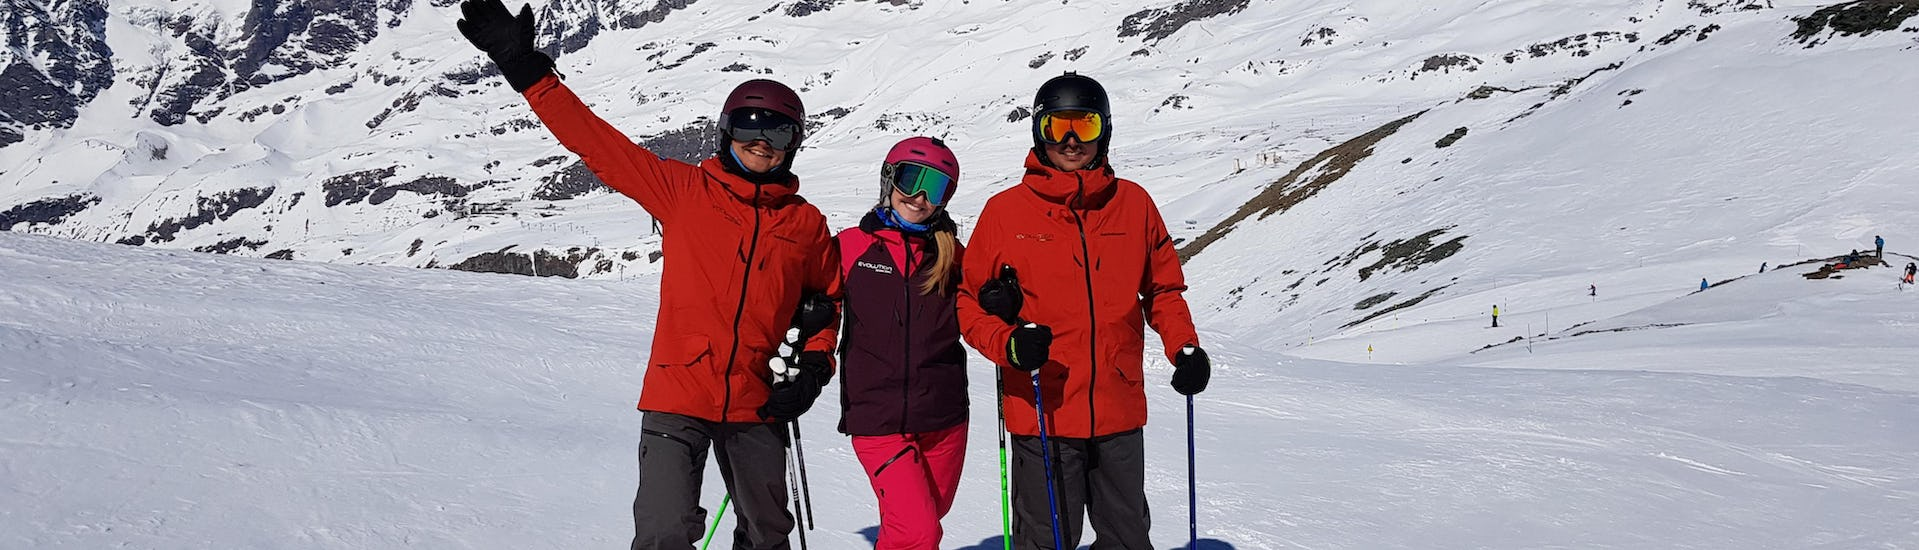 """Ski Instructor Private for Adults """"Full Day"""" - All Levels"""